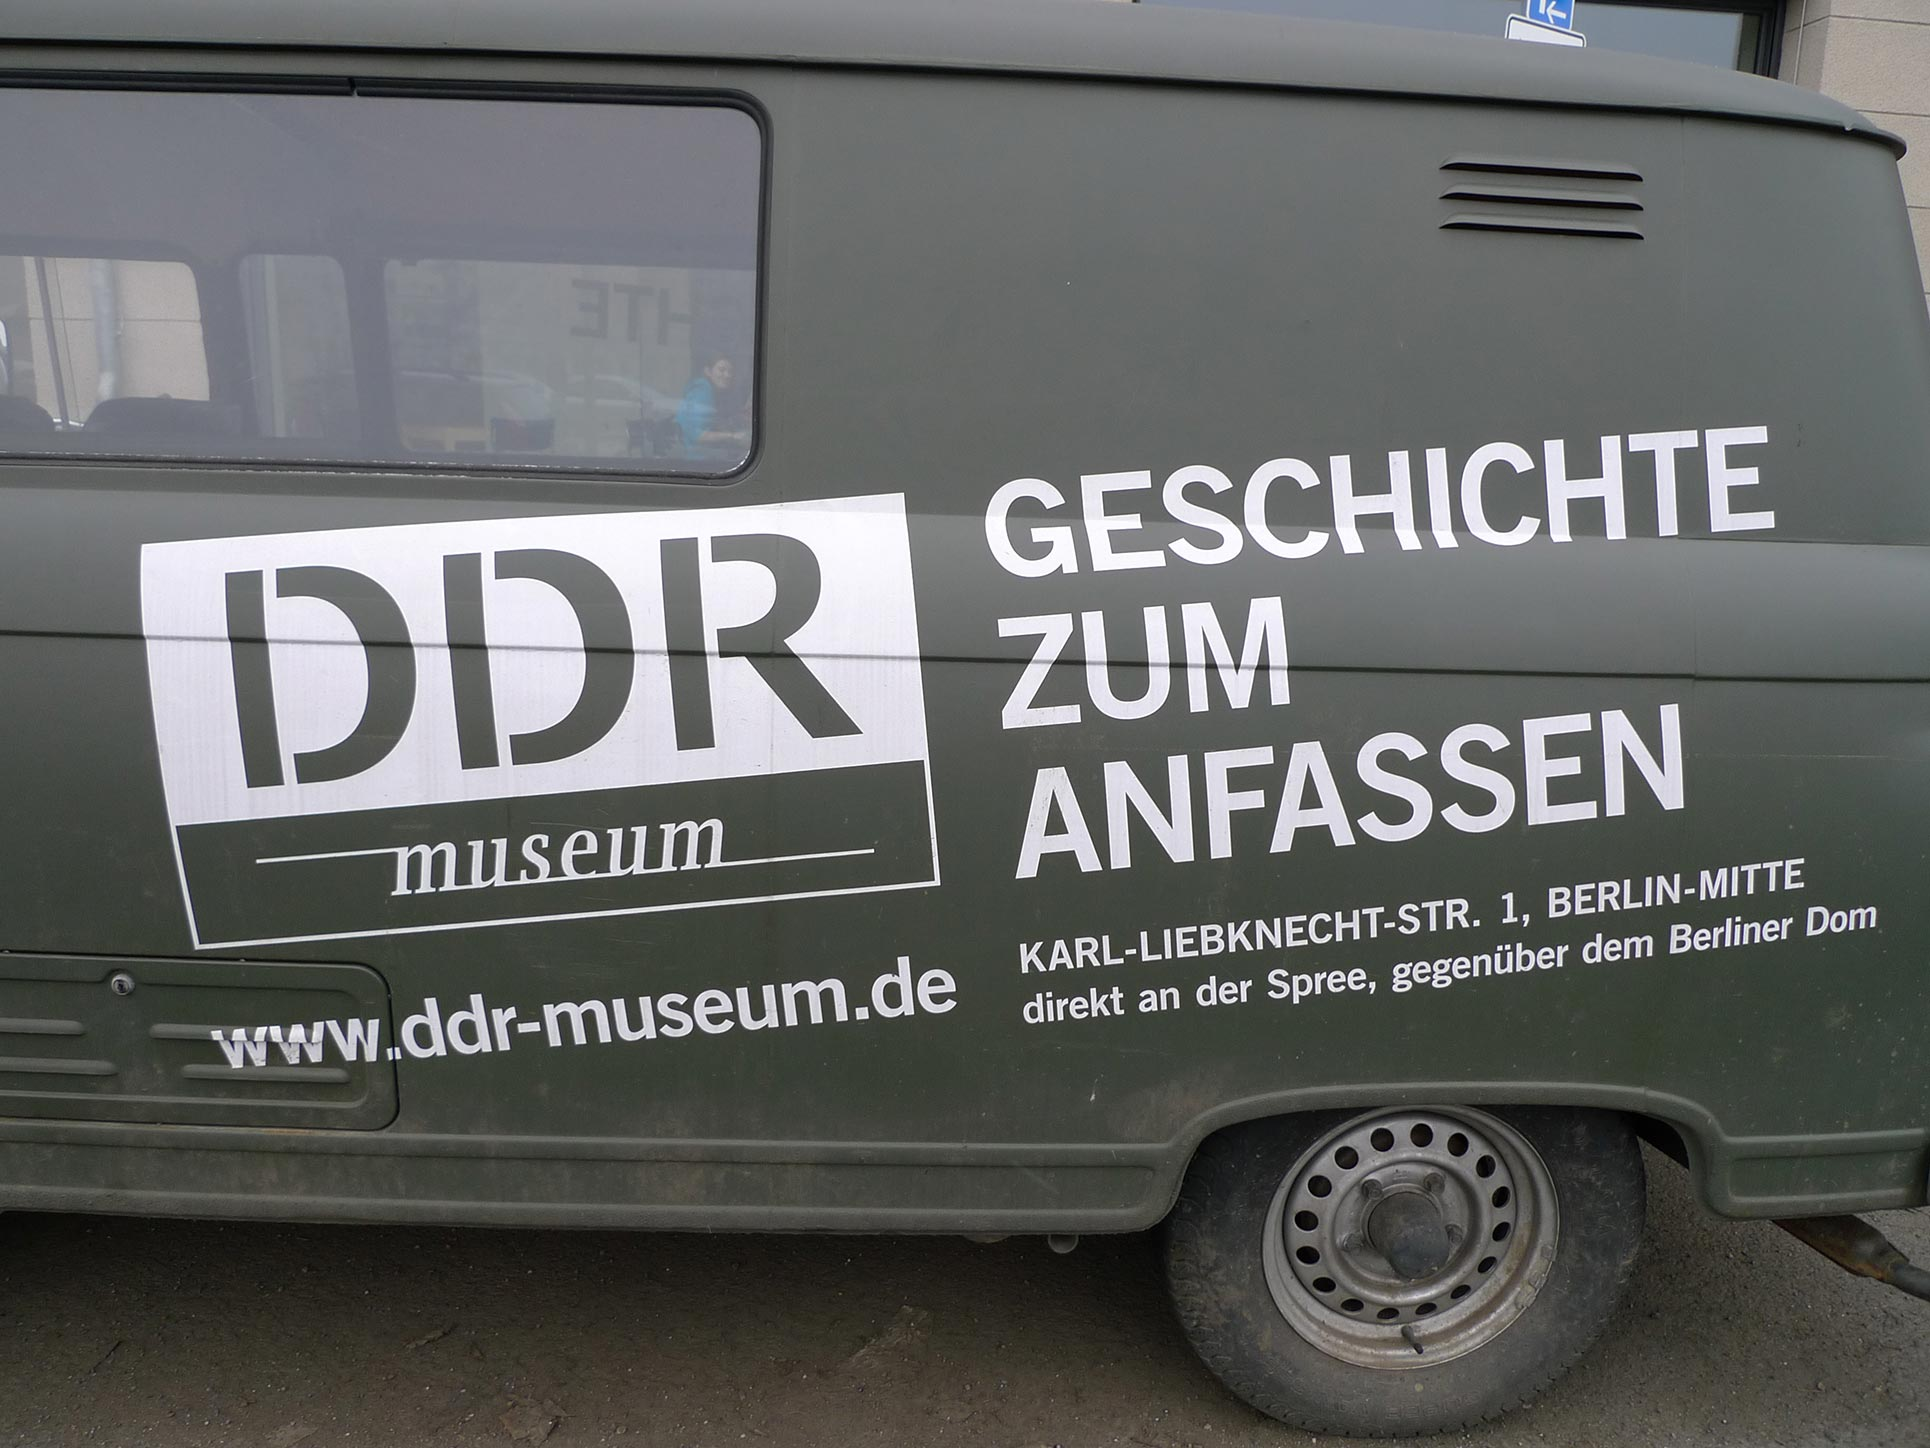 The VW-Bus of the DDR Museum,